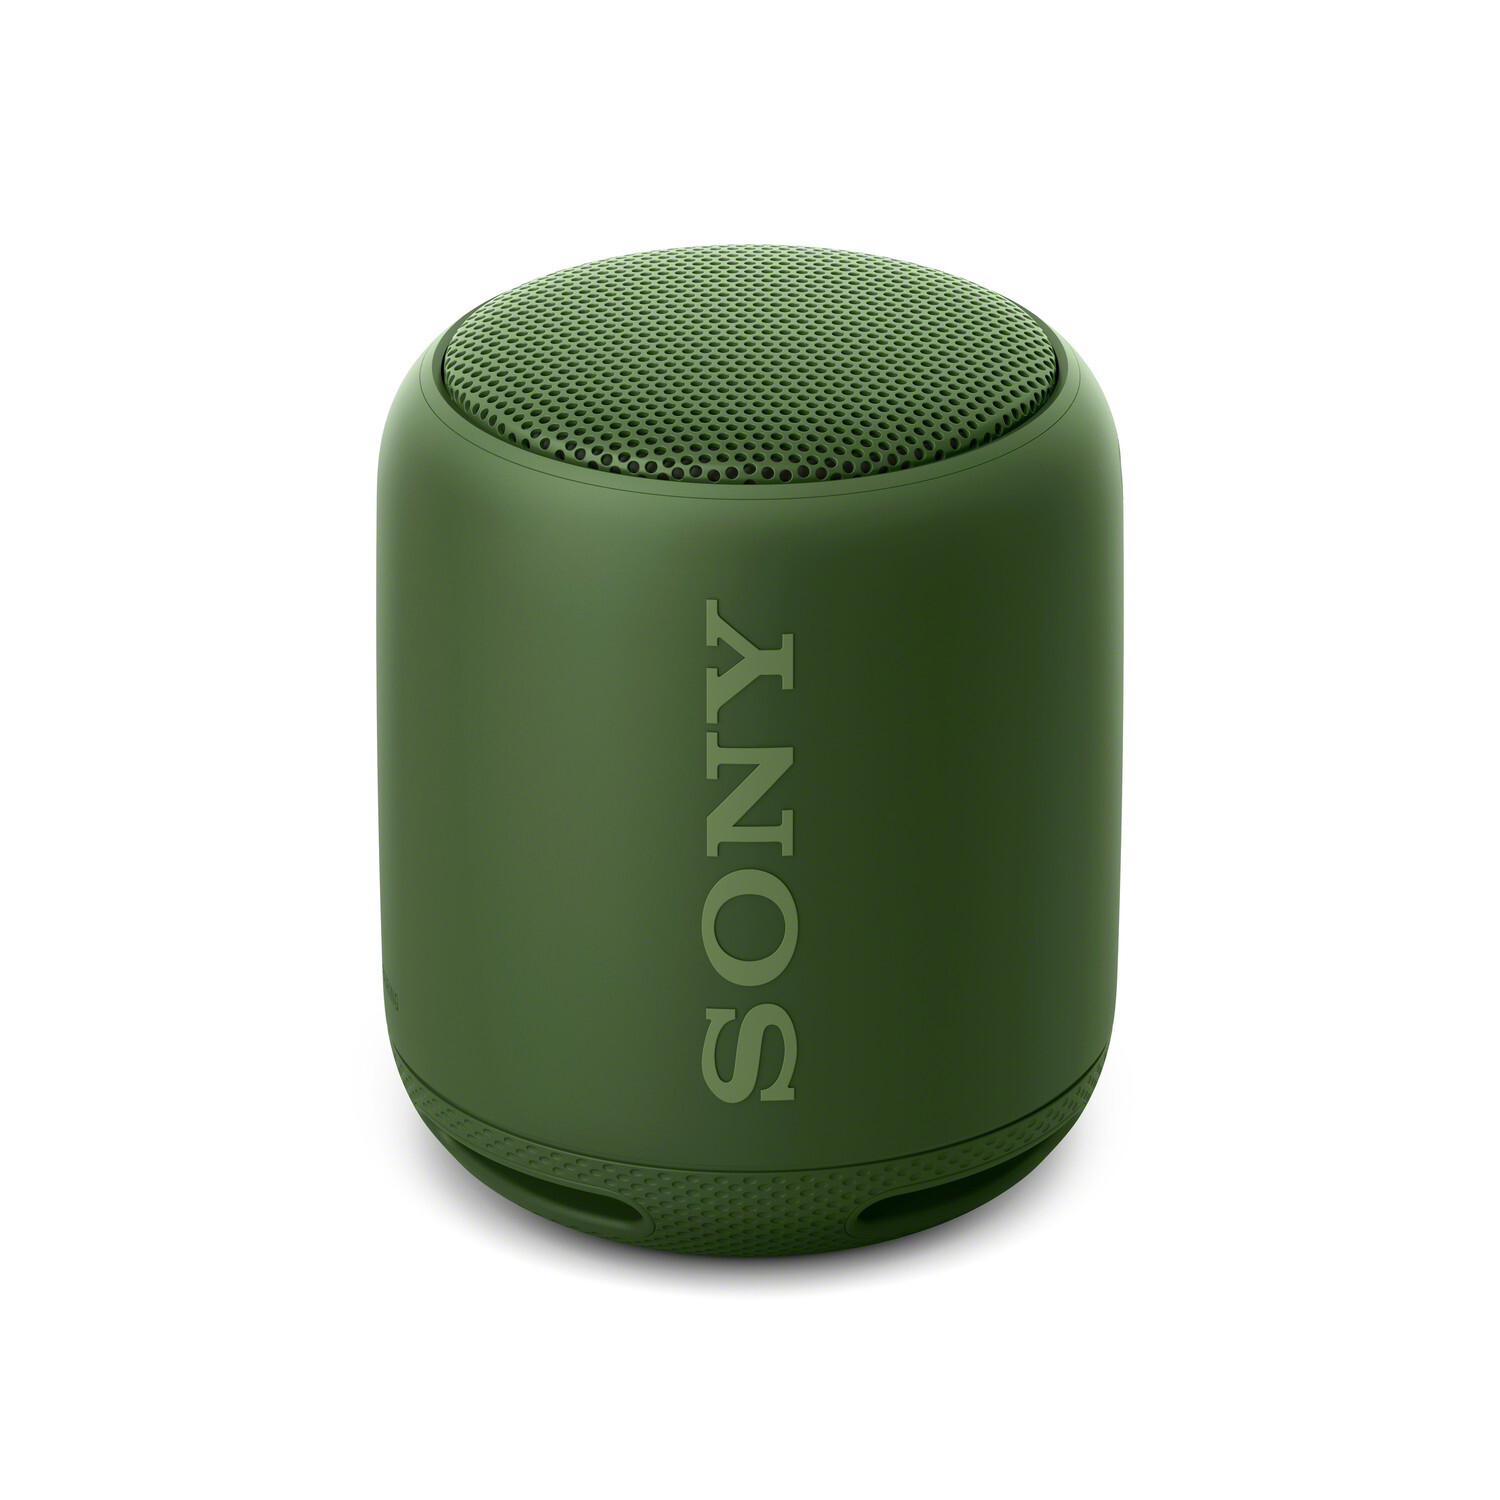 New Sony Extra Bass Headphones And Wireless Speakers Are